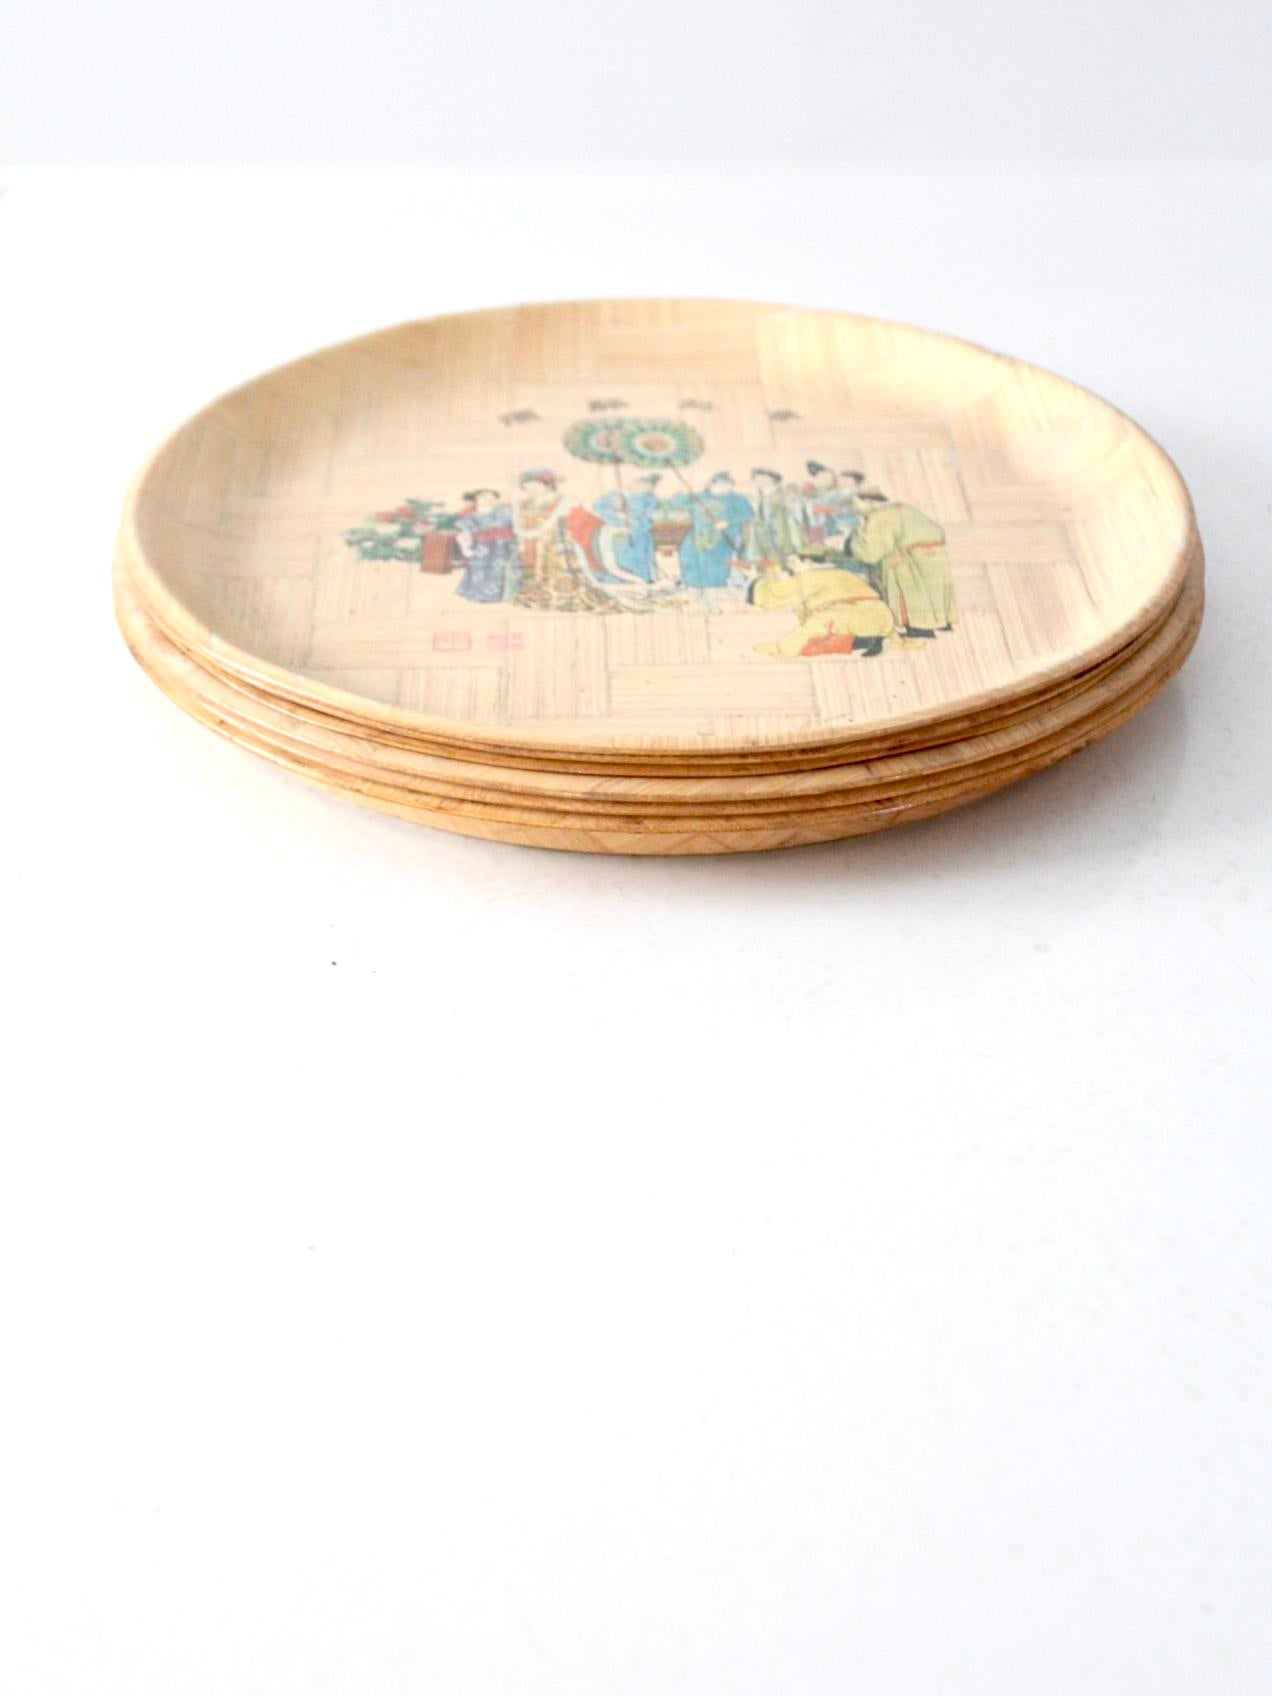 Vintage Chinese Bamboo Painted Plates - Set of 6 - Image 5 of 10  sc 1 st  Chairish & Vintage Chinese Bamboo Painted Plates - Set of 6 | Chairish